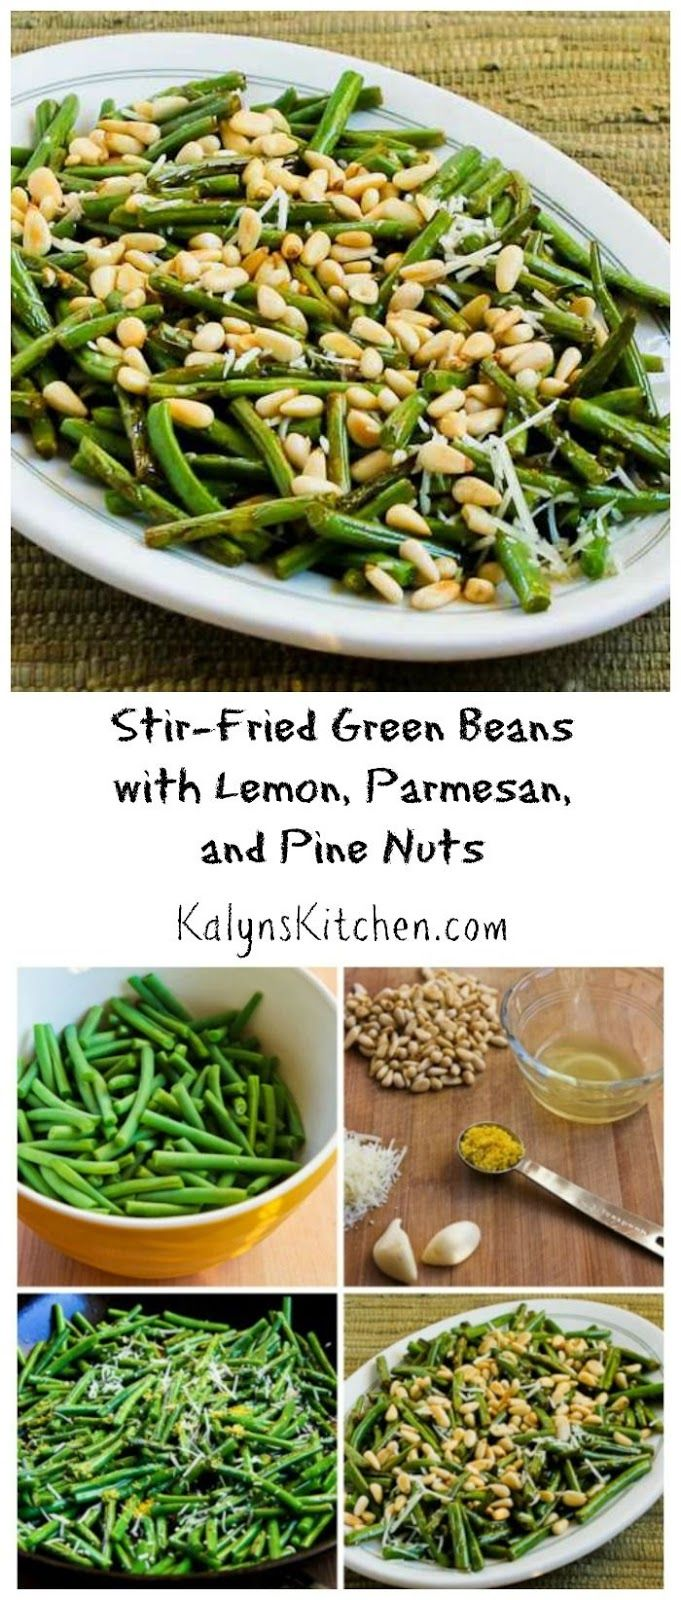 Stir-Fried Green Beans with Lemon, Parmesan, and Pine Nuts are delicious and easy to make, and these tasty green beans are low-carb, gluten-free, and South Beach Diet friendly. [from KalynsKitchen.com]